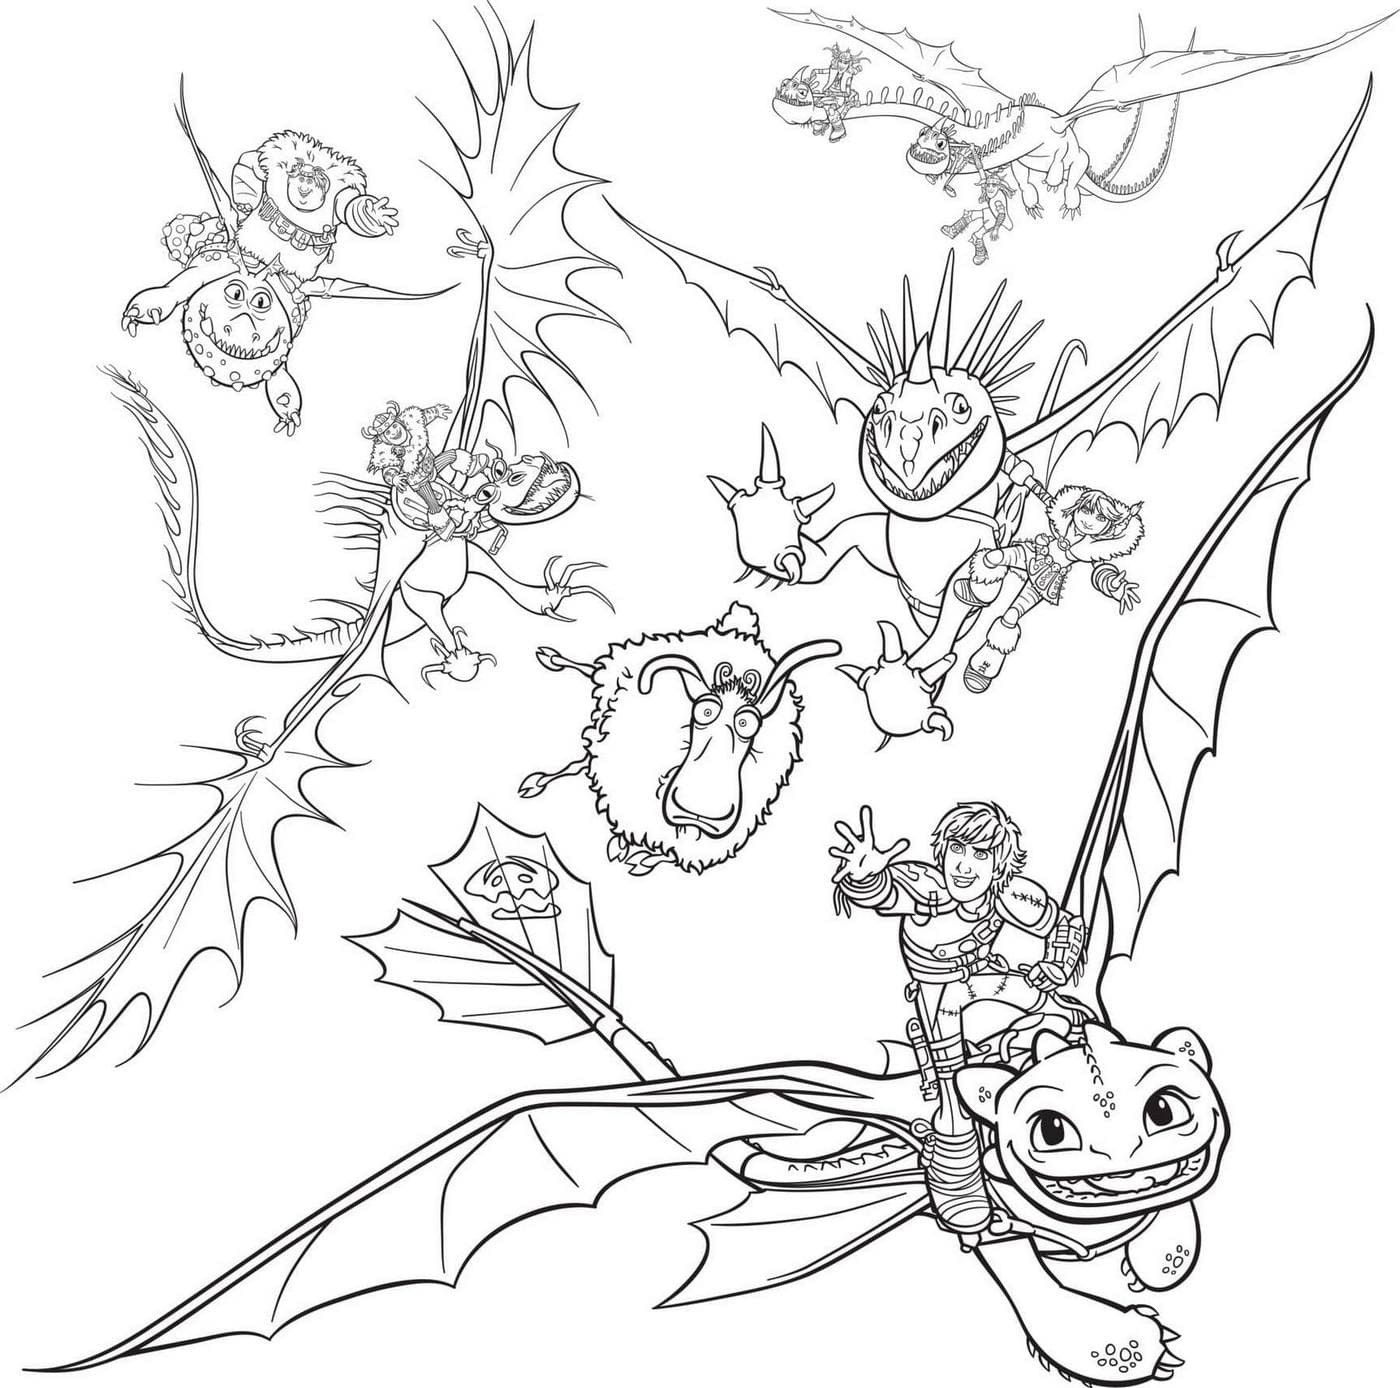 dragons 3 coloring pages night fury dragon coloring page free printable coloring dragons pages 3 coloring